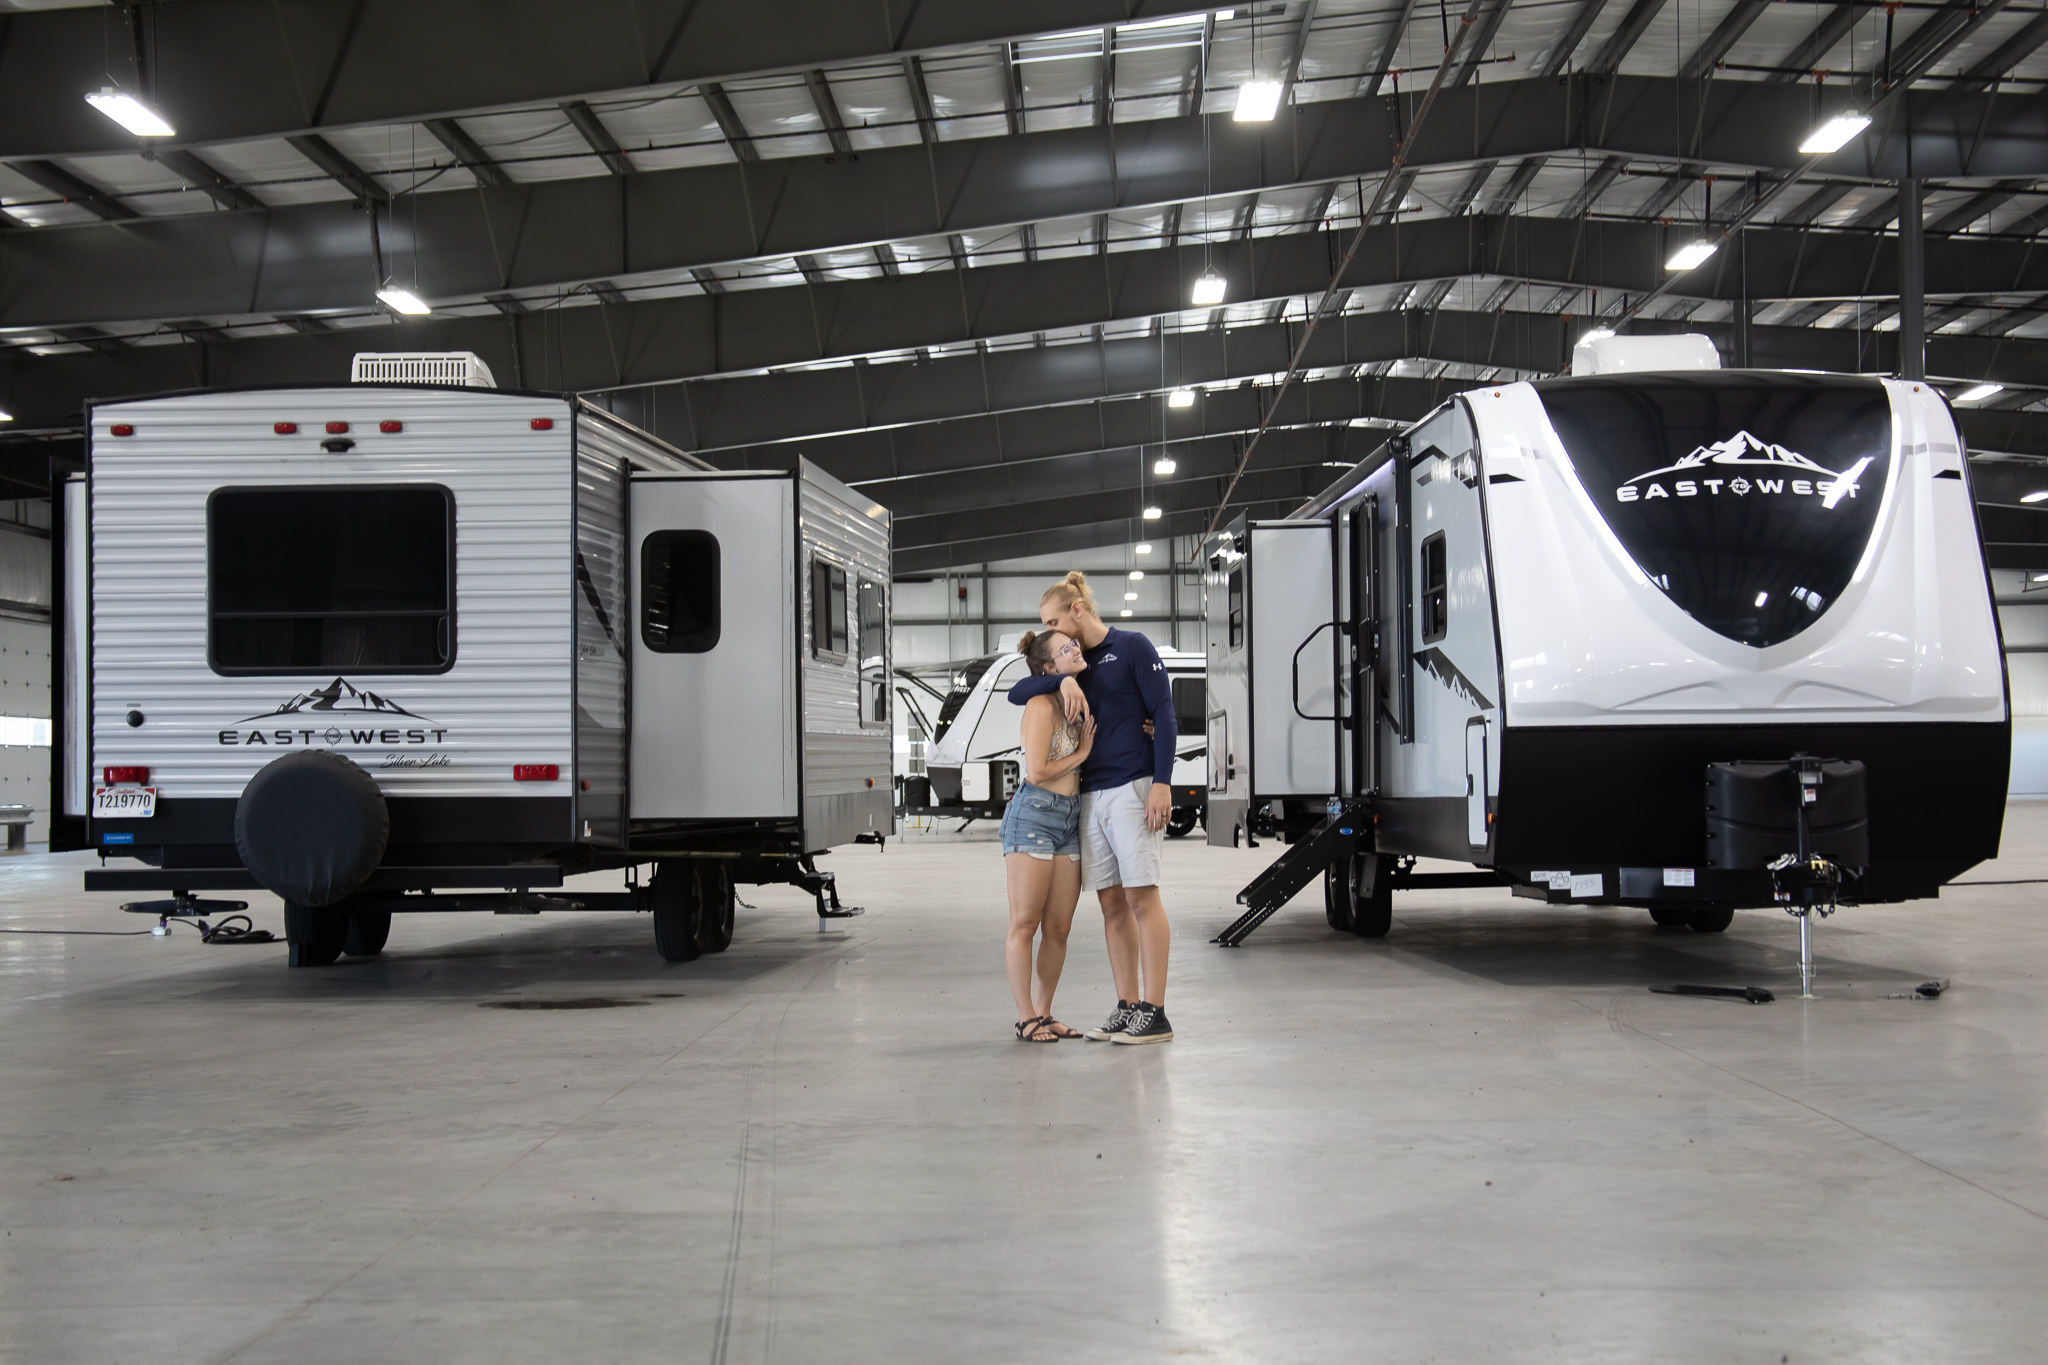 two people standing next to RVs